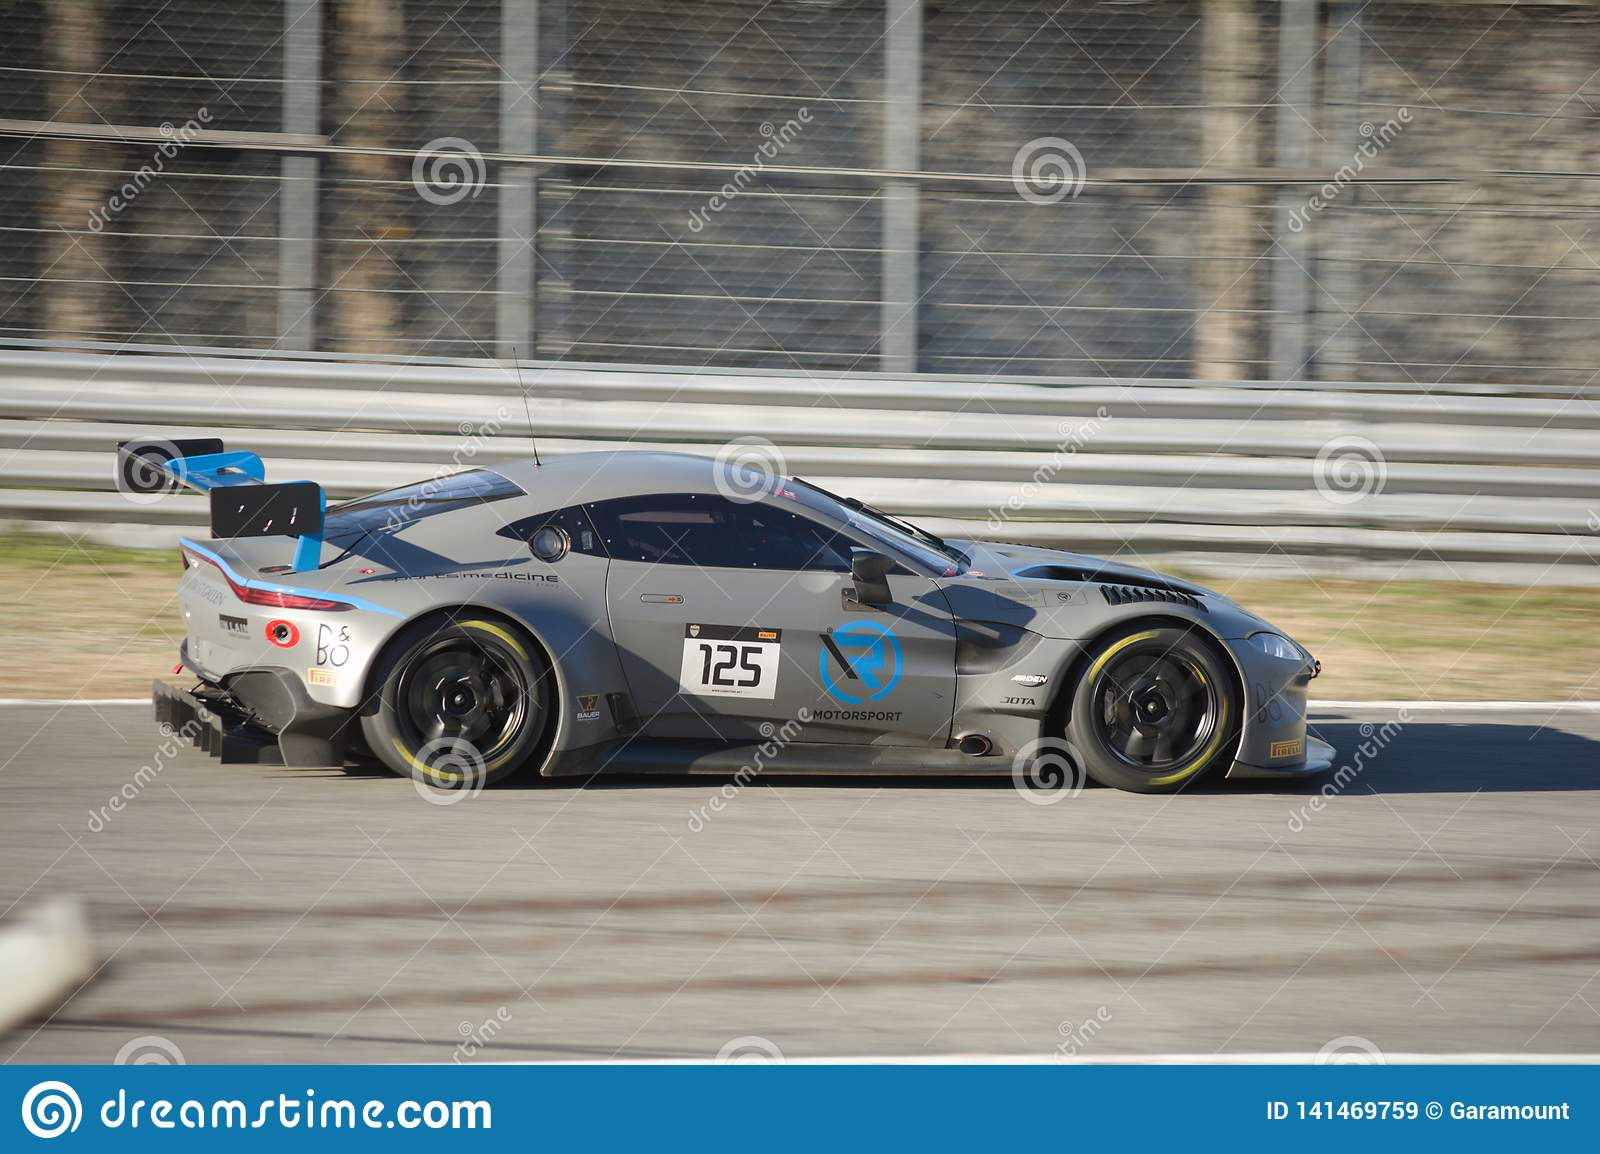 R Motorsport Aston Martin Vantage Gt3 On Track Editorial Stock Image Image Of Curbstone Event 141469759